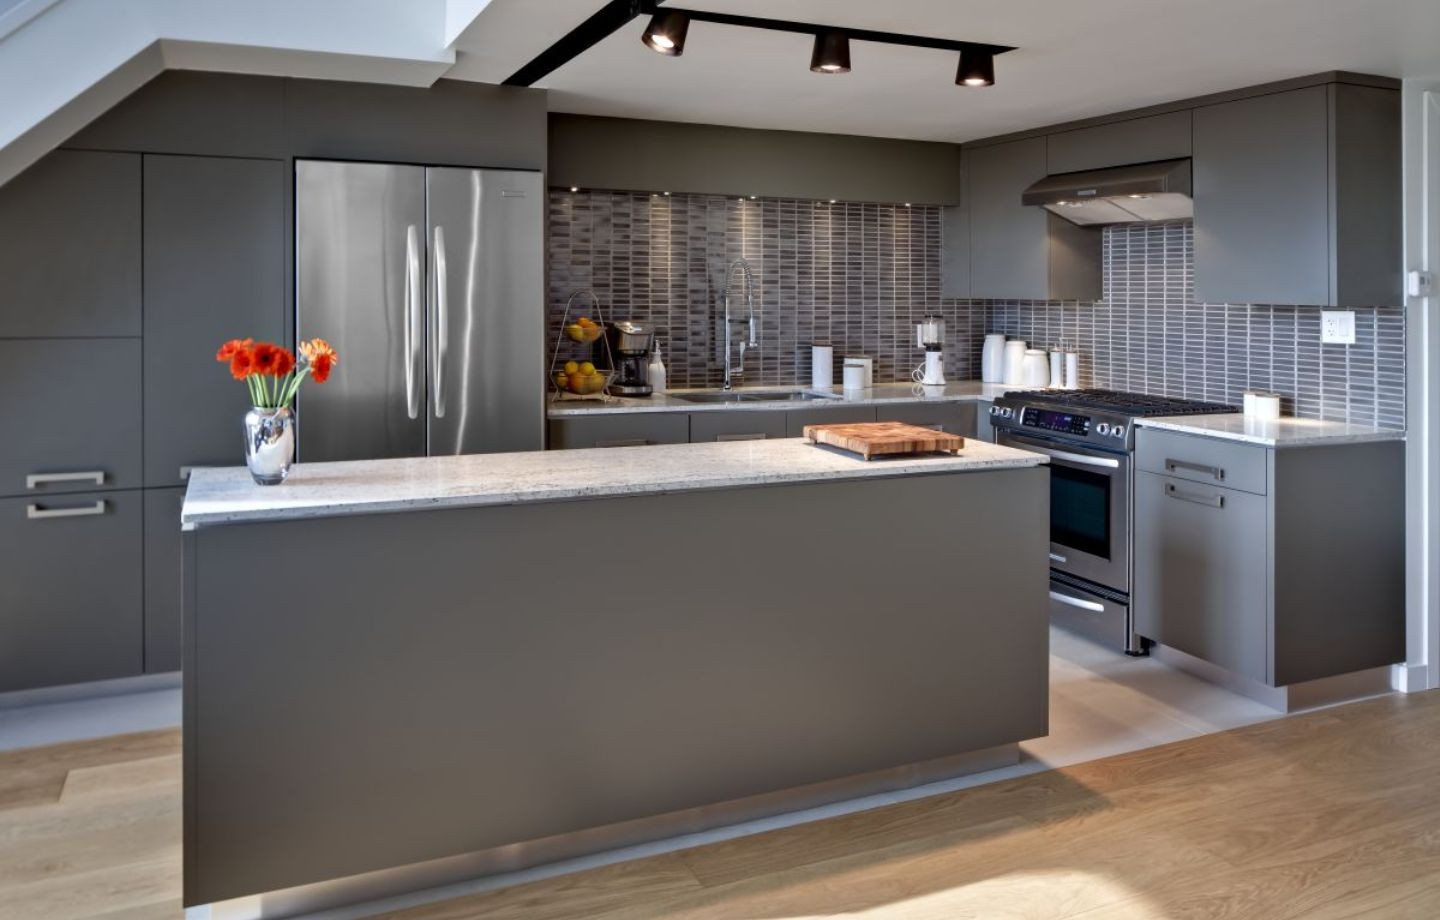 Best ideas about Yellow Kitchen Decorating Ideas . Save or Pin Blue And Yellow Kitchen Decorating Ideas Pale Walls Soft Now.